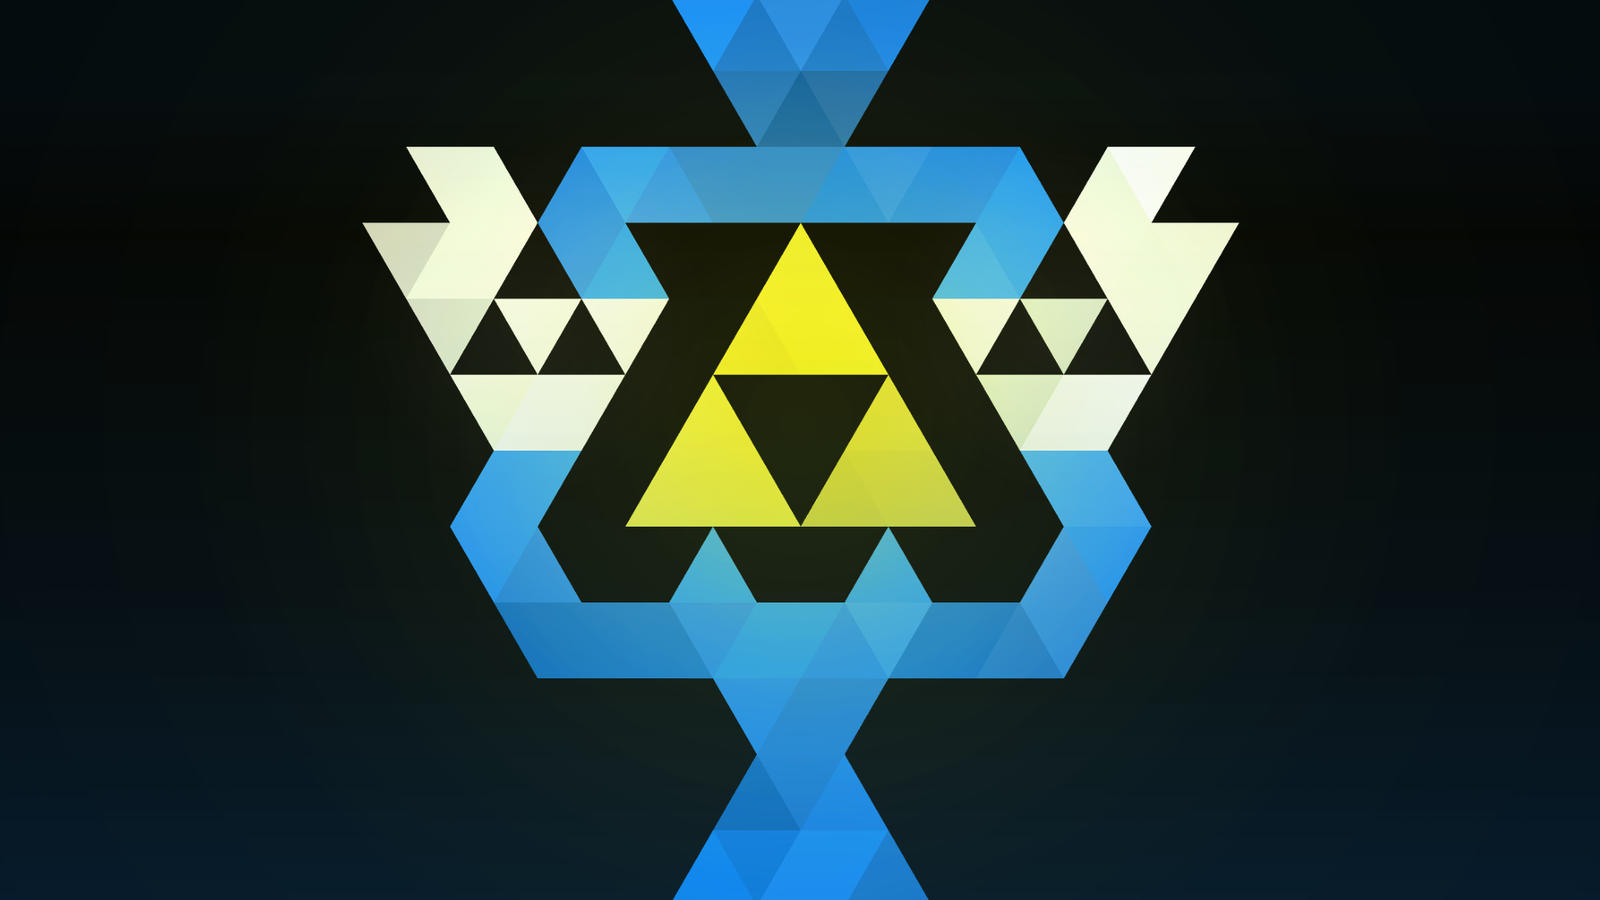 The Legend Of Zelda Triforce Wallpaper By Happywhite On Deviantart